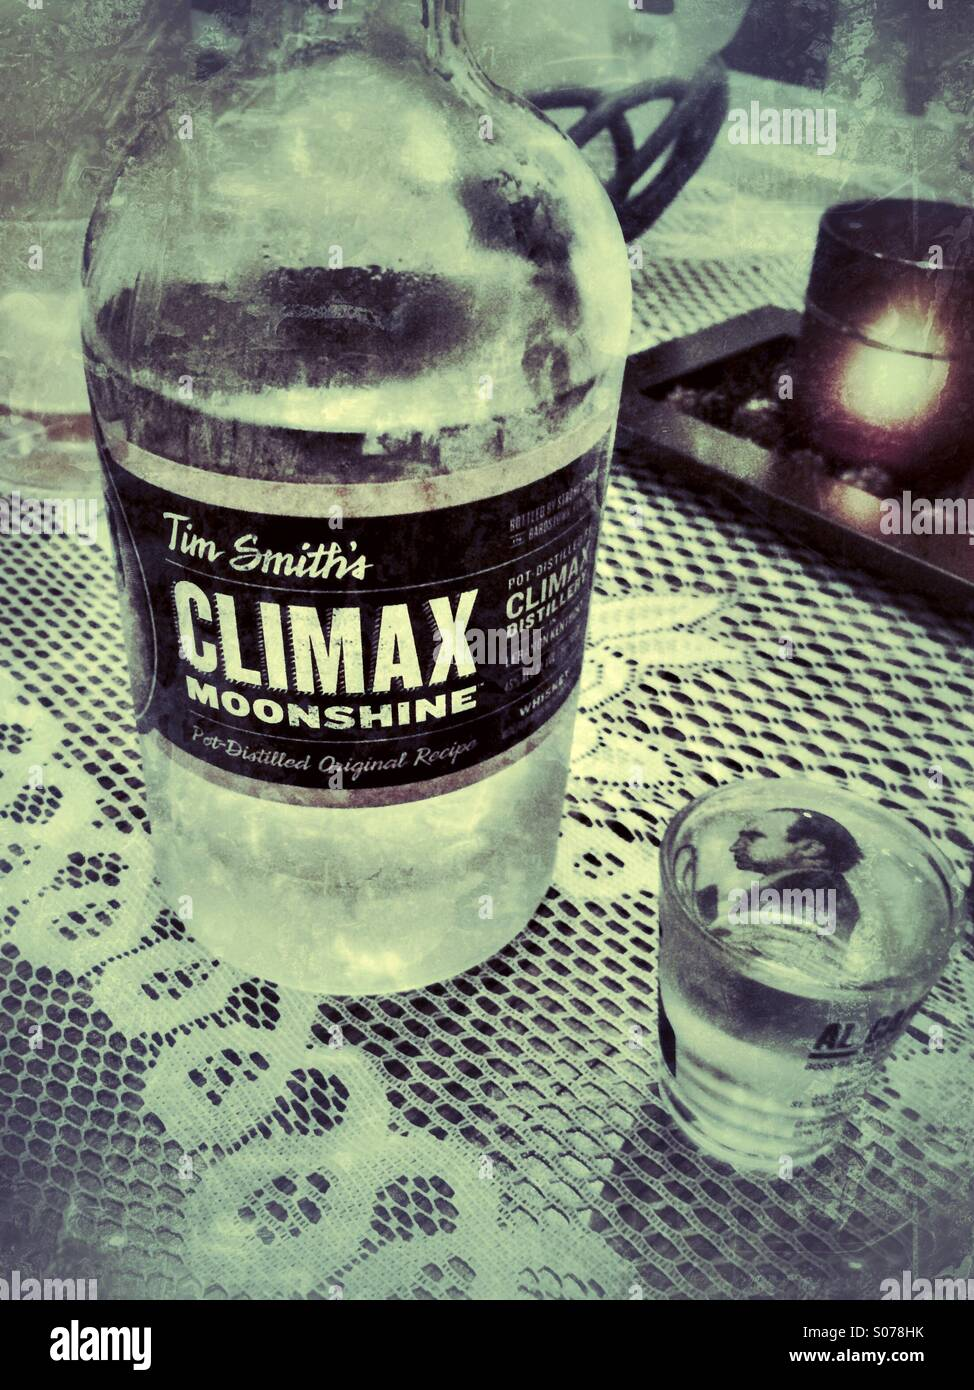 A Shot of Tim Smith's Climax Moonshine - Stock Image